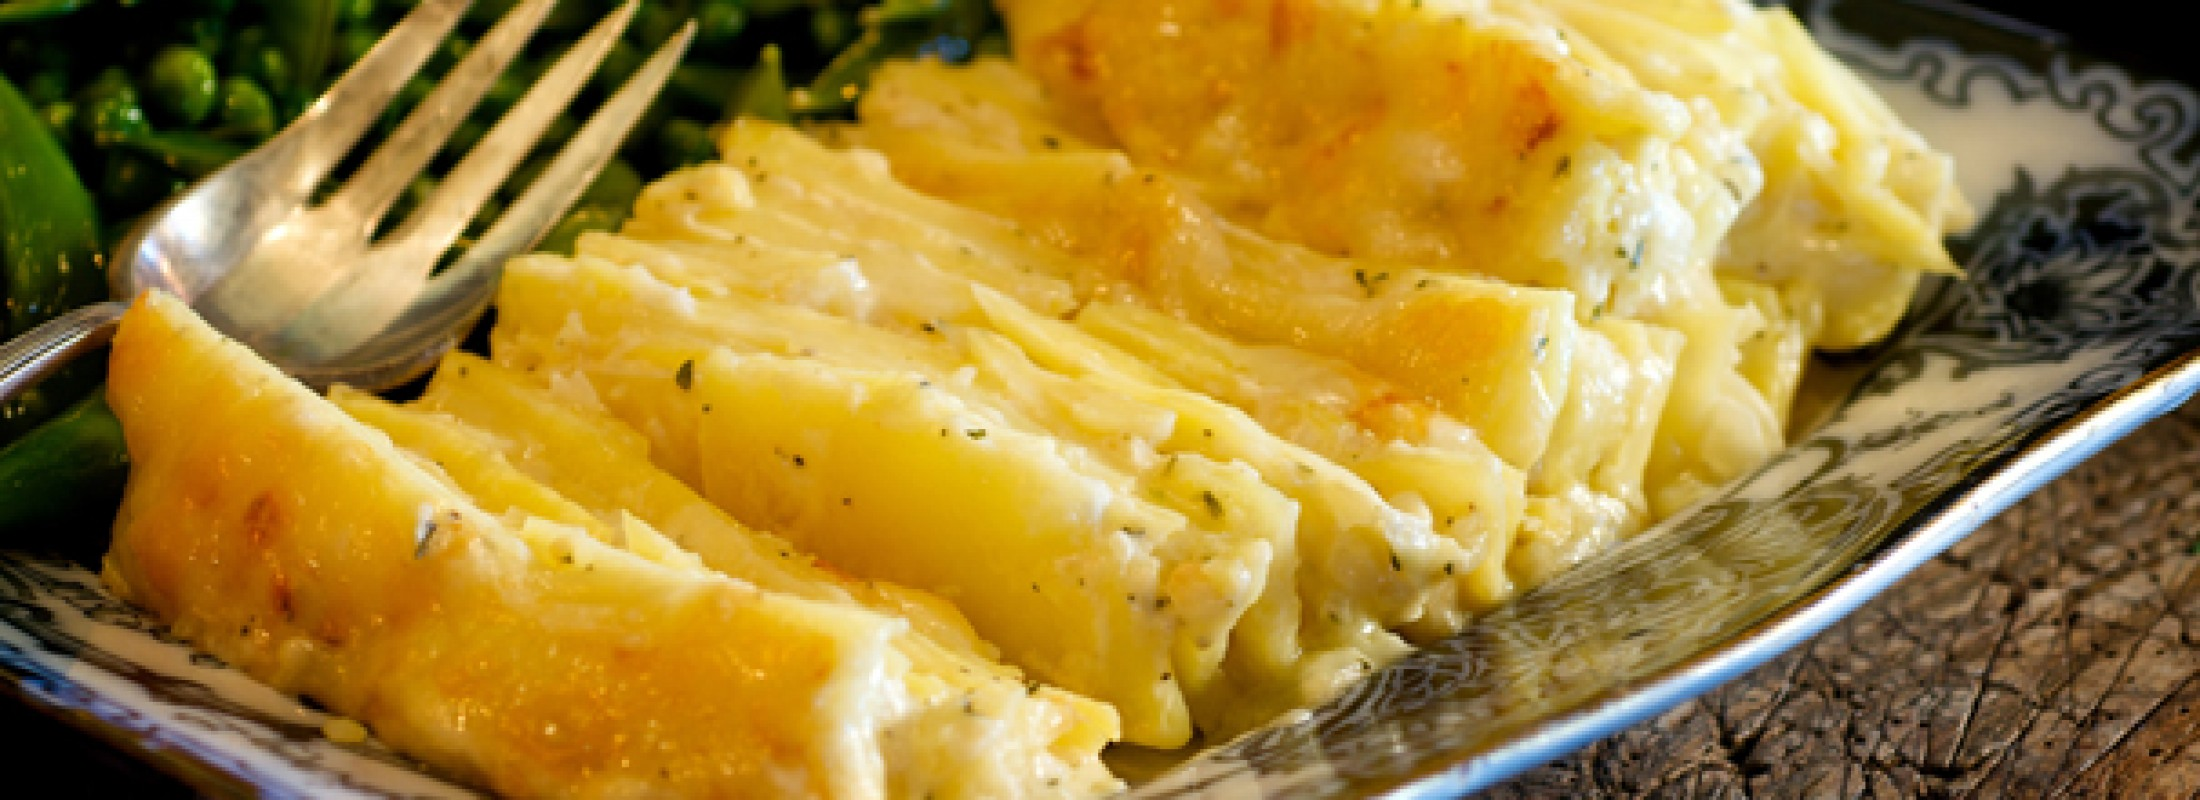 Scalloped potatoes. Photo credit: The Food Channel.